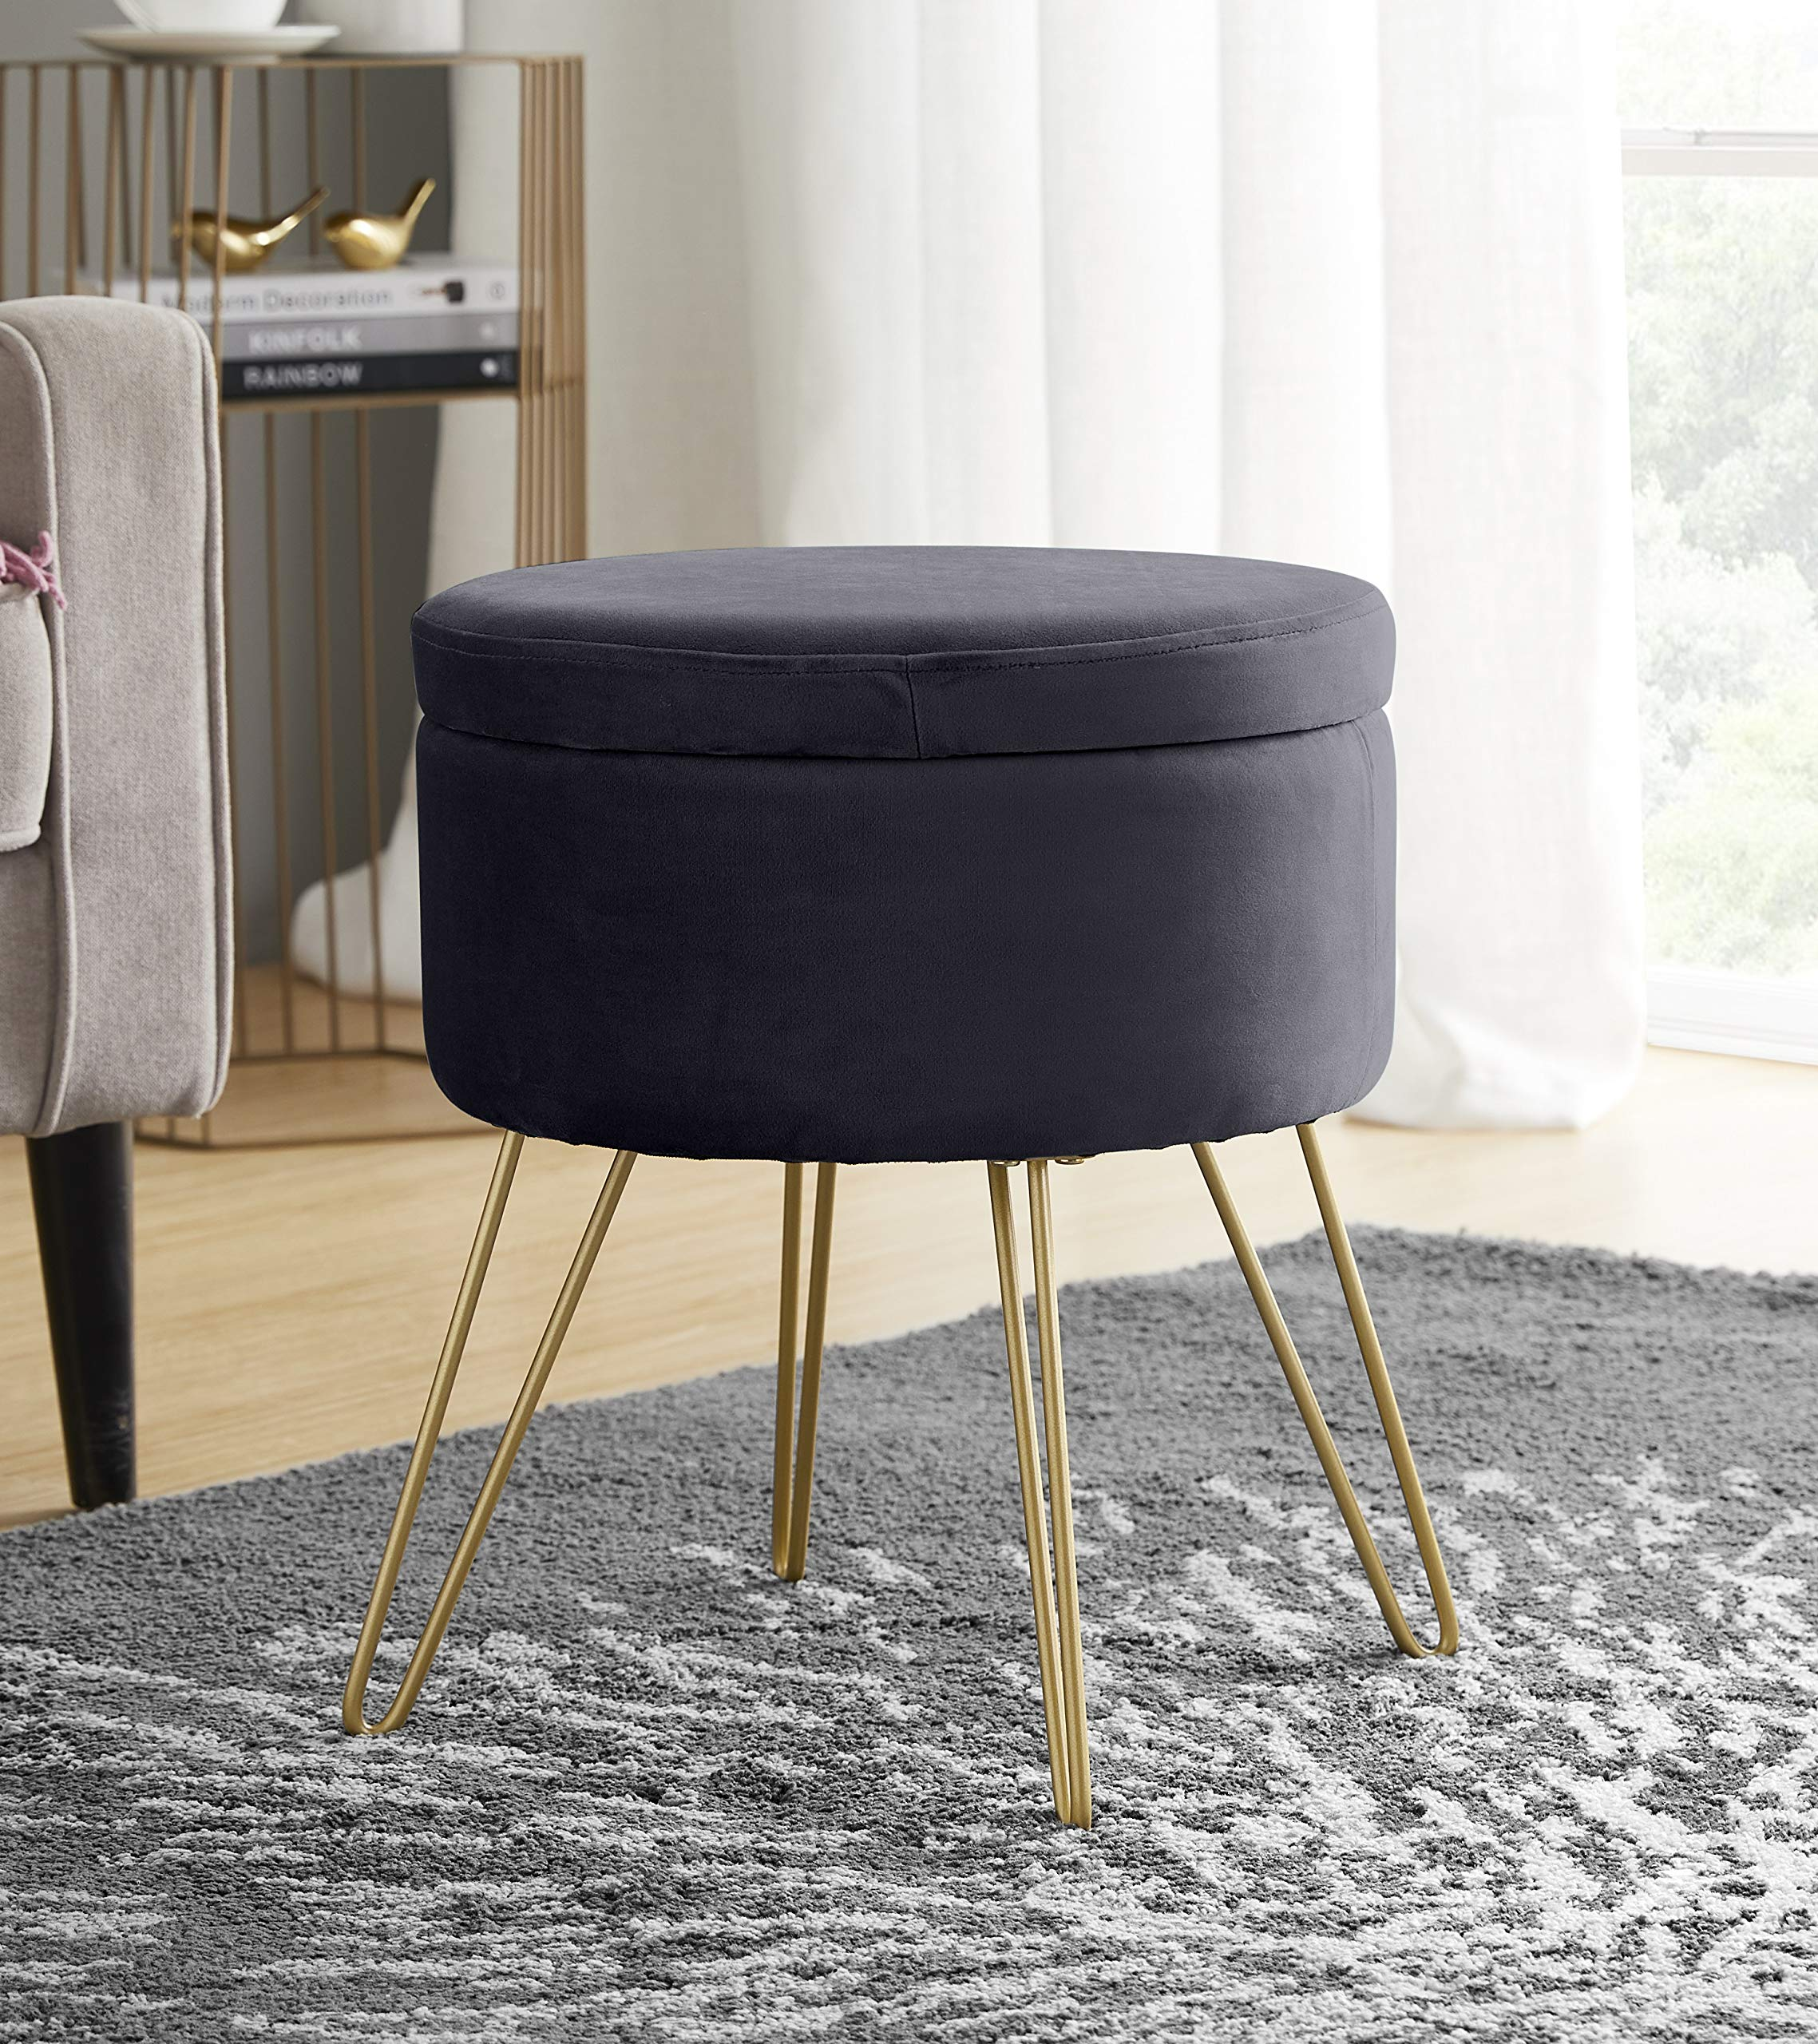 Ornavo Home Modern Round Velvet Storage Ottoman Foot Rest Stool Seat With Gold Metal Legs Tray Top Coffee Table Grey Kitchen Dining